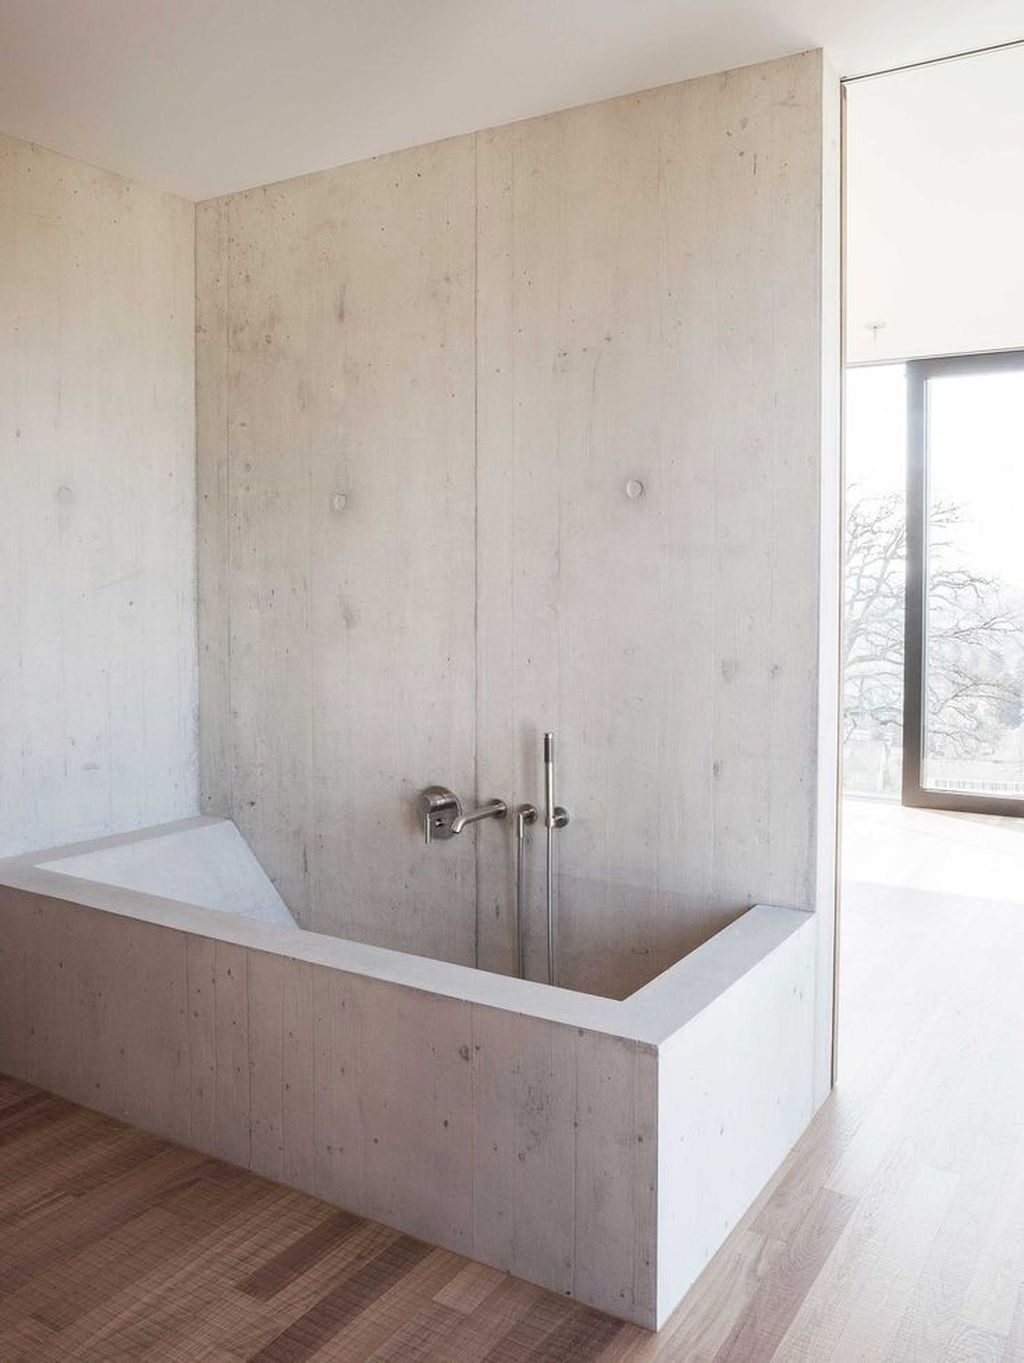 Captivating Bathtub Designs Ideas You Must See37